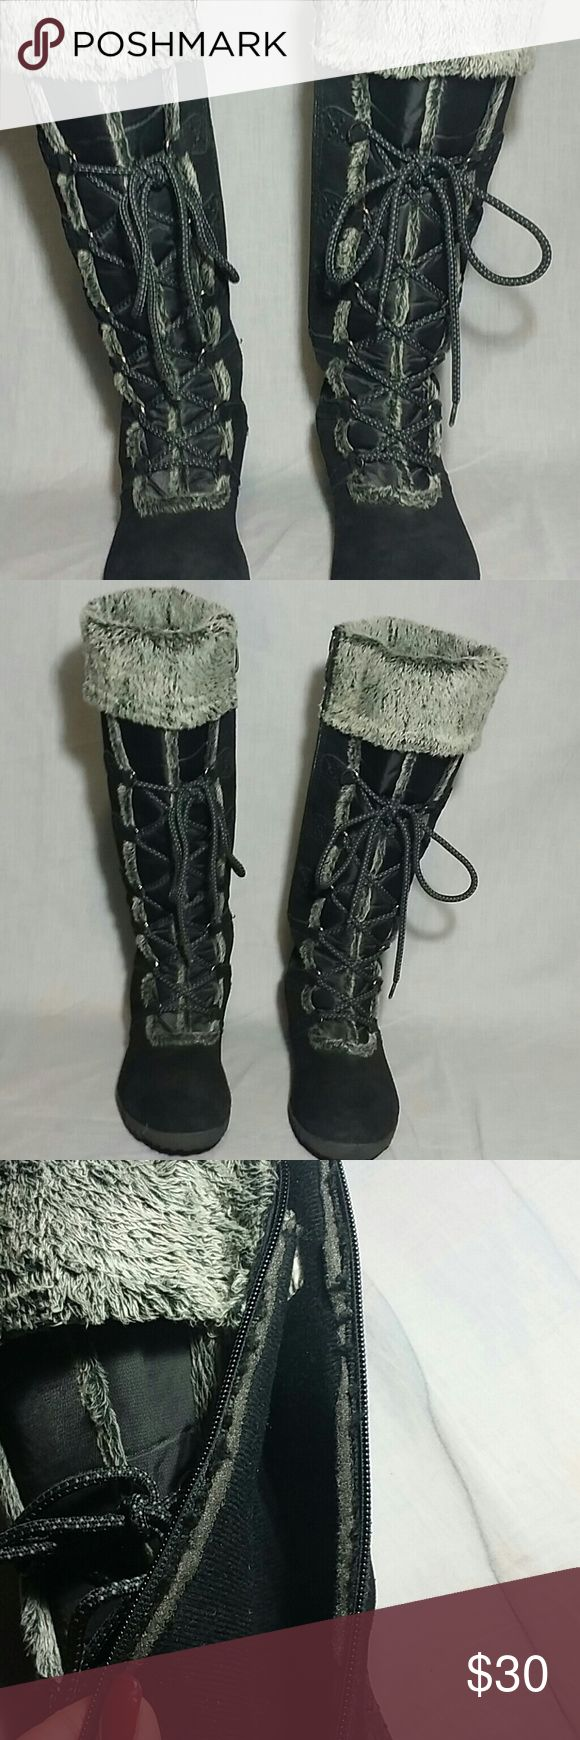 """KHOMBU Boots Shoes Black Size 7 M TALL Leather Women's boots Shoes Tall 16"""" Calf 7"""" Leather upper faux fur lining, lace ups item is good condition. Khombu Shoes Winter & Rain Boots"""